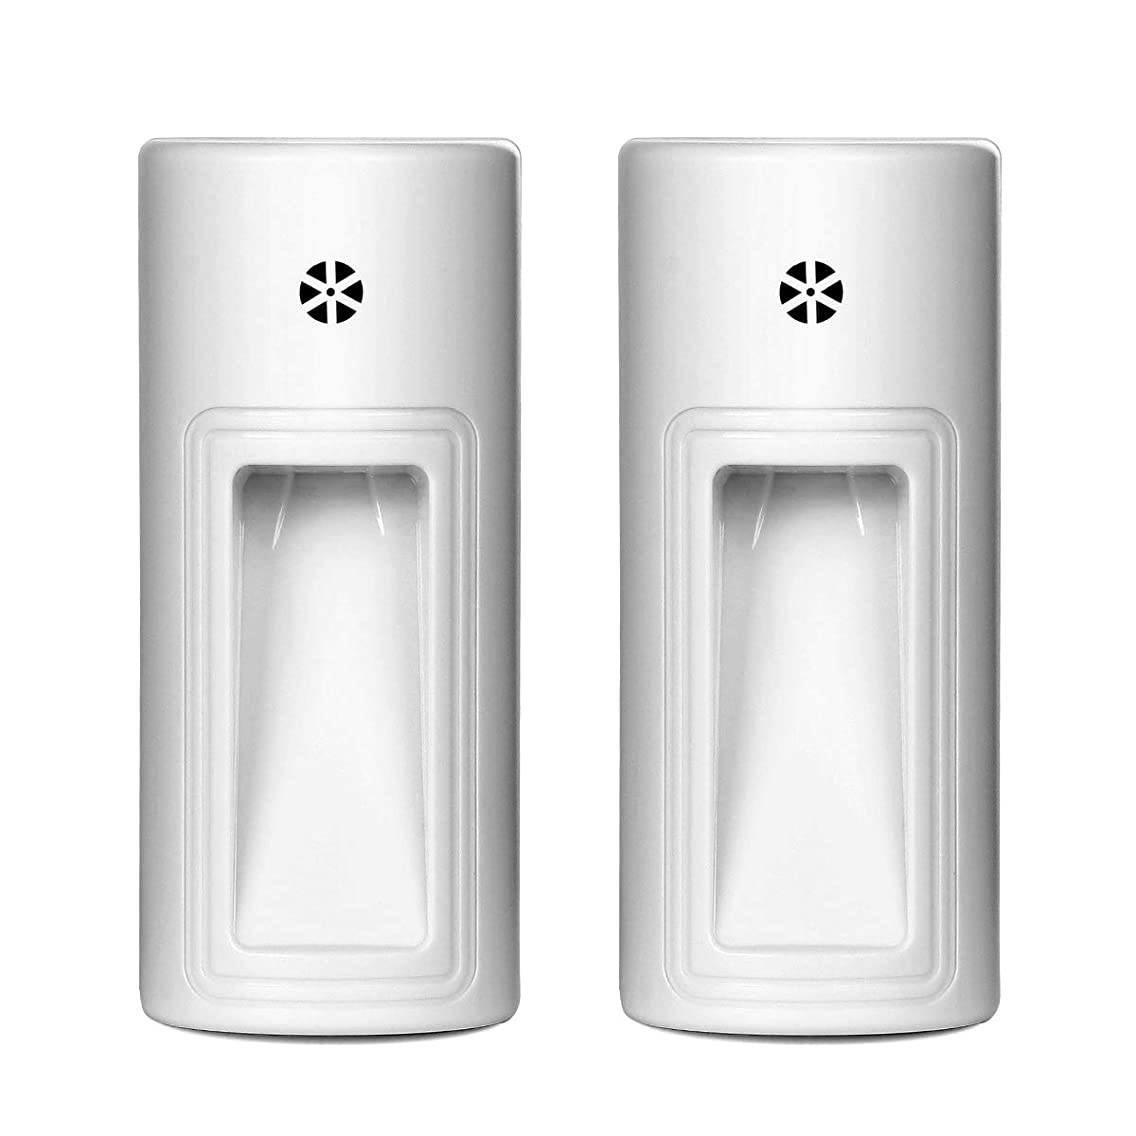 LED Plug-In Night Light,Automatic Light Sensing,Energy Efficient Night Light Lamp with Dusk to Dawn Sensor Ideal for Corridor, Aisle, Bedroom, Bathroom, Kitchen, Porch, Stairway and Basement (2 Pack)